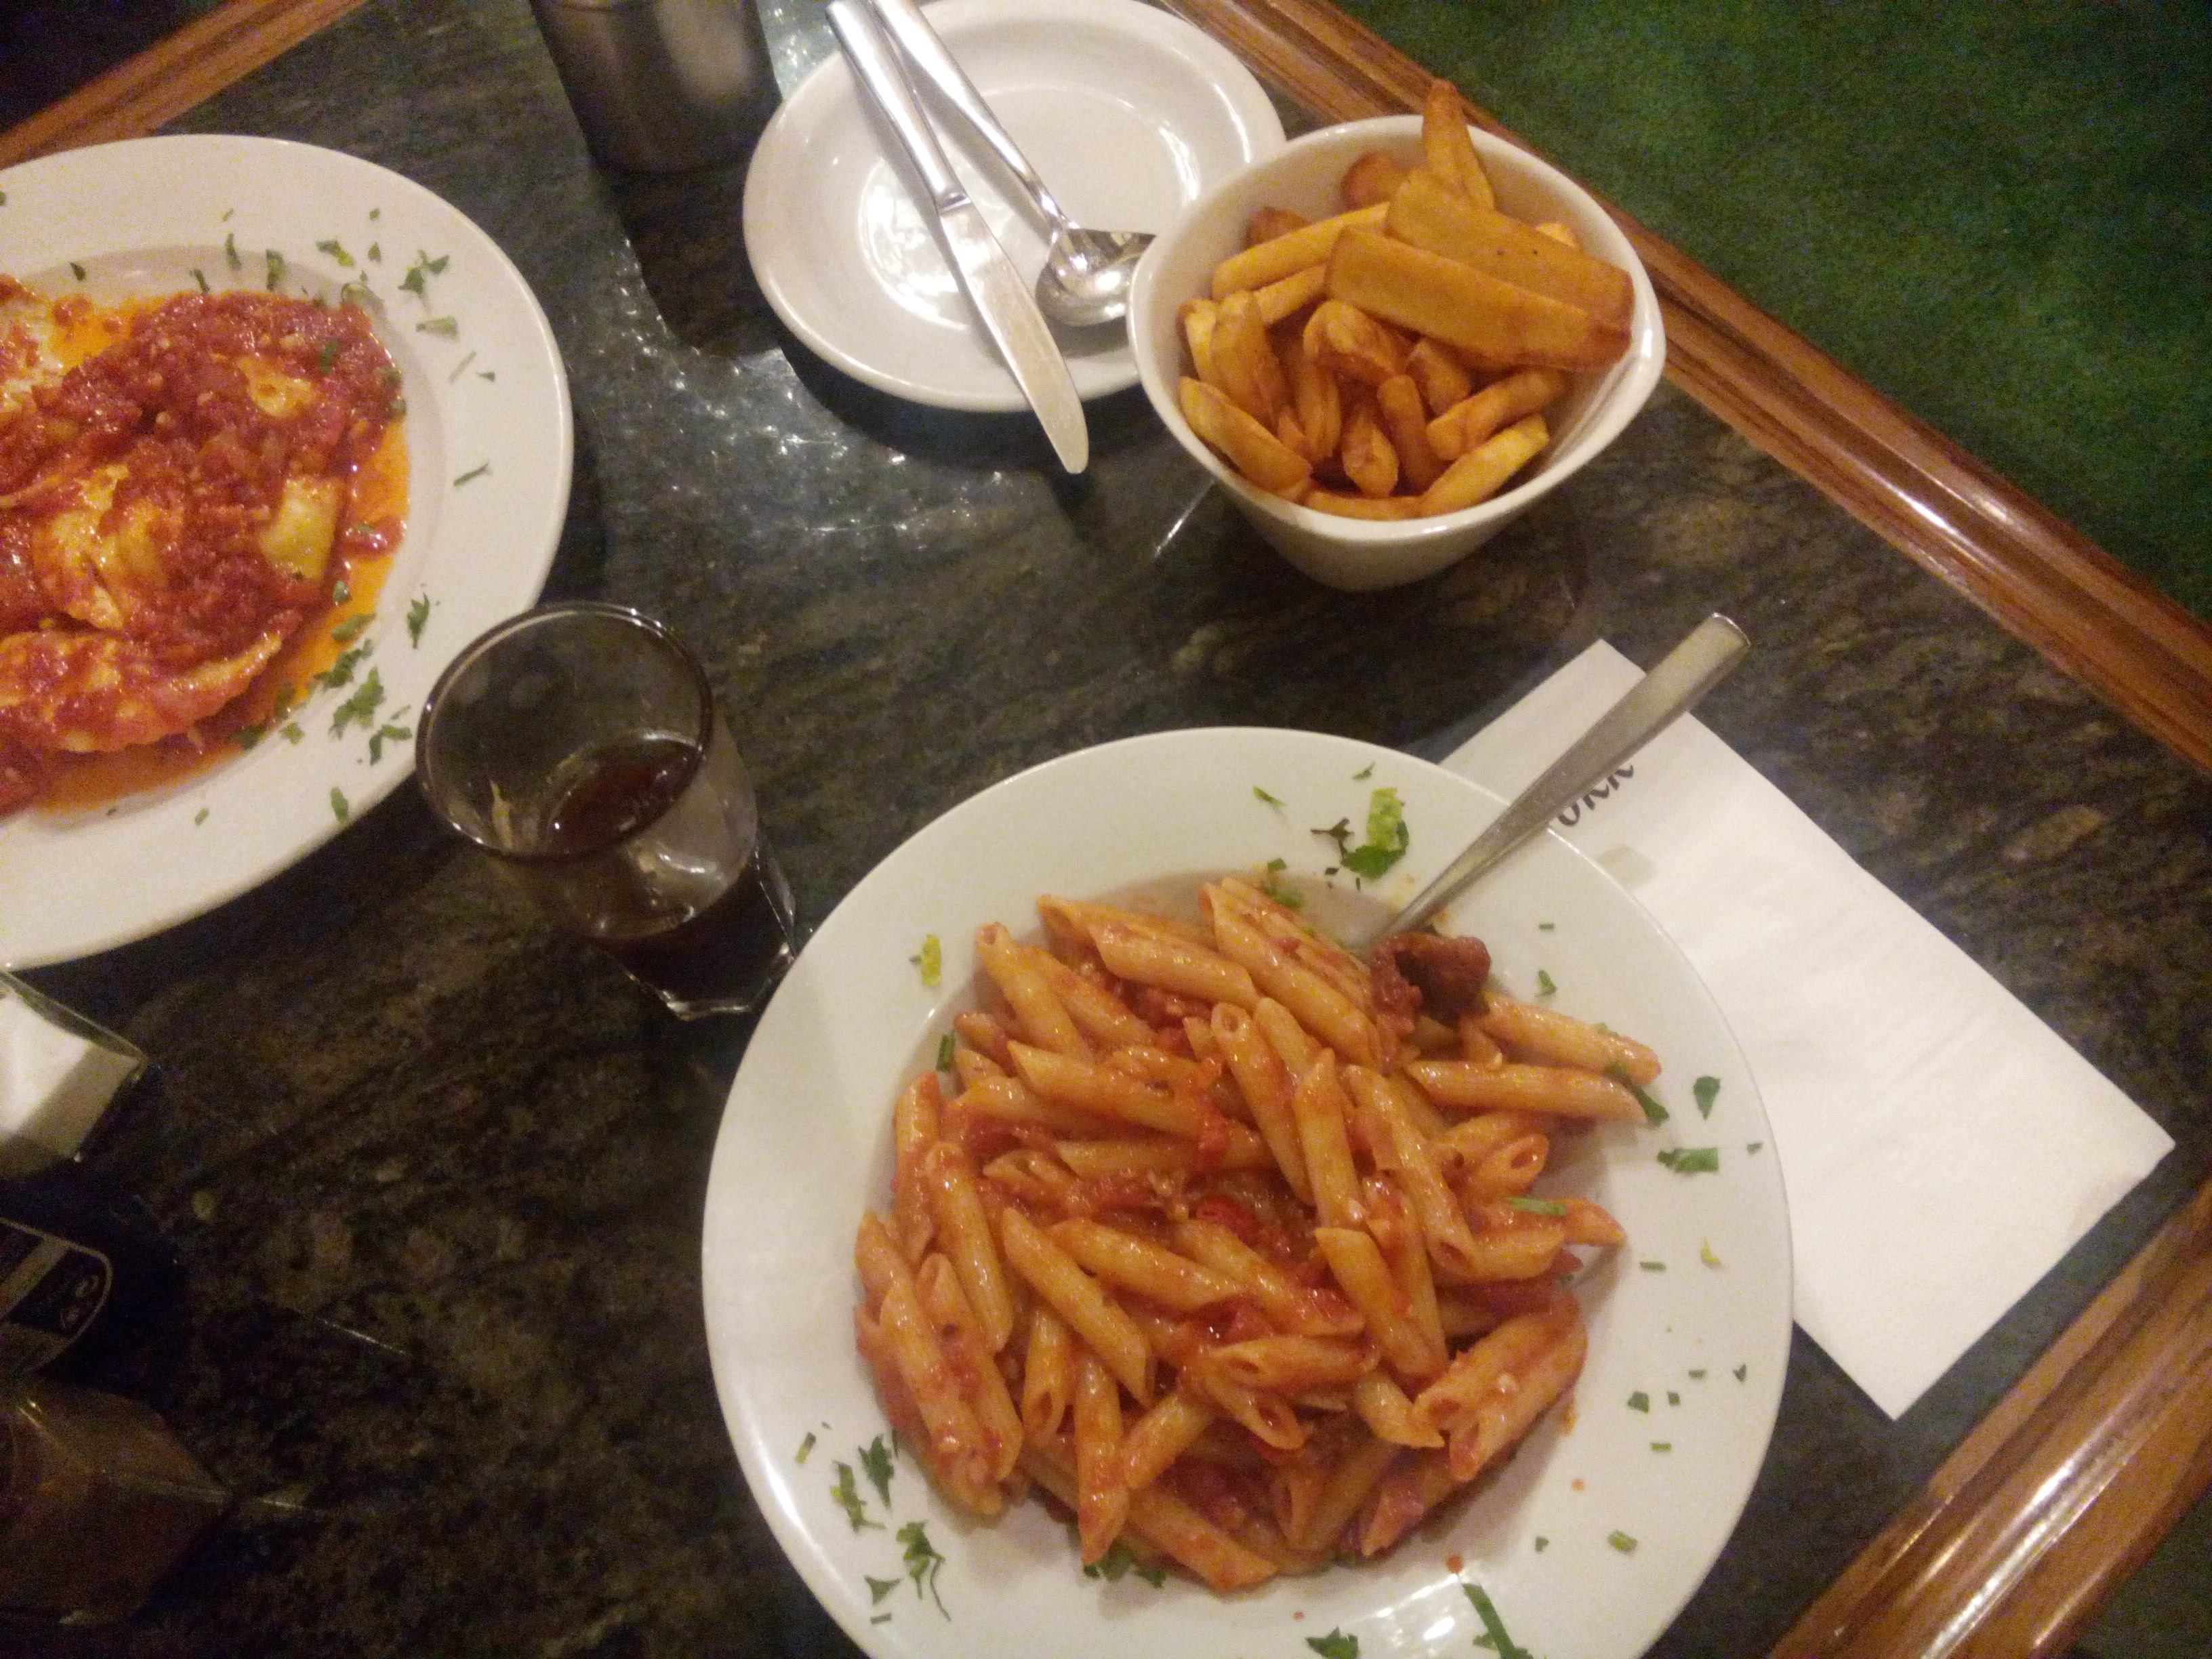 A table with two pasta dishes with tomato sauce, and a small bowl of chips